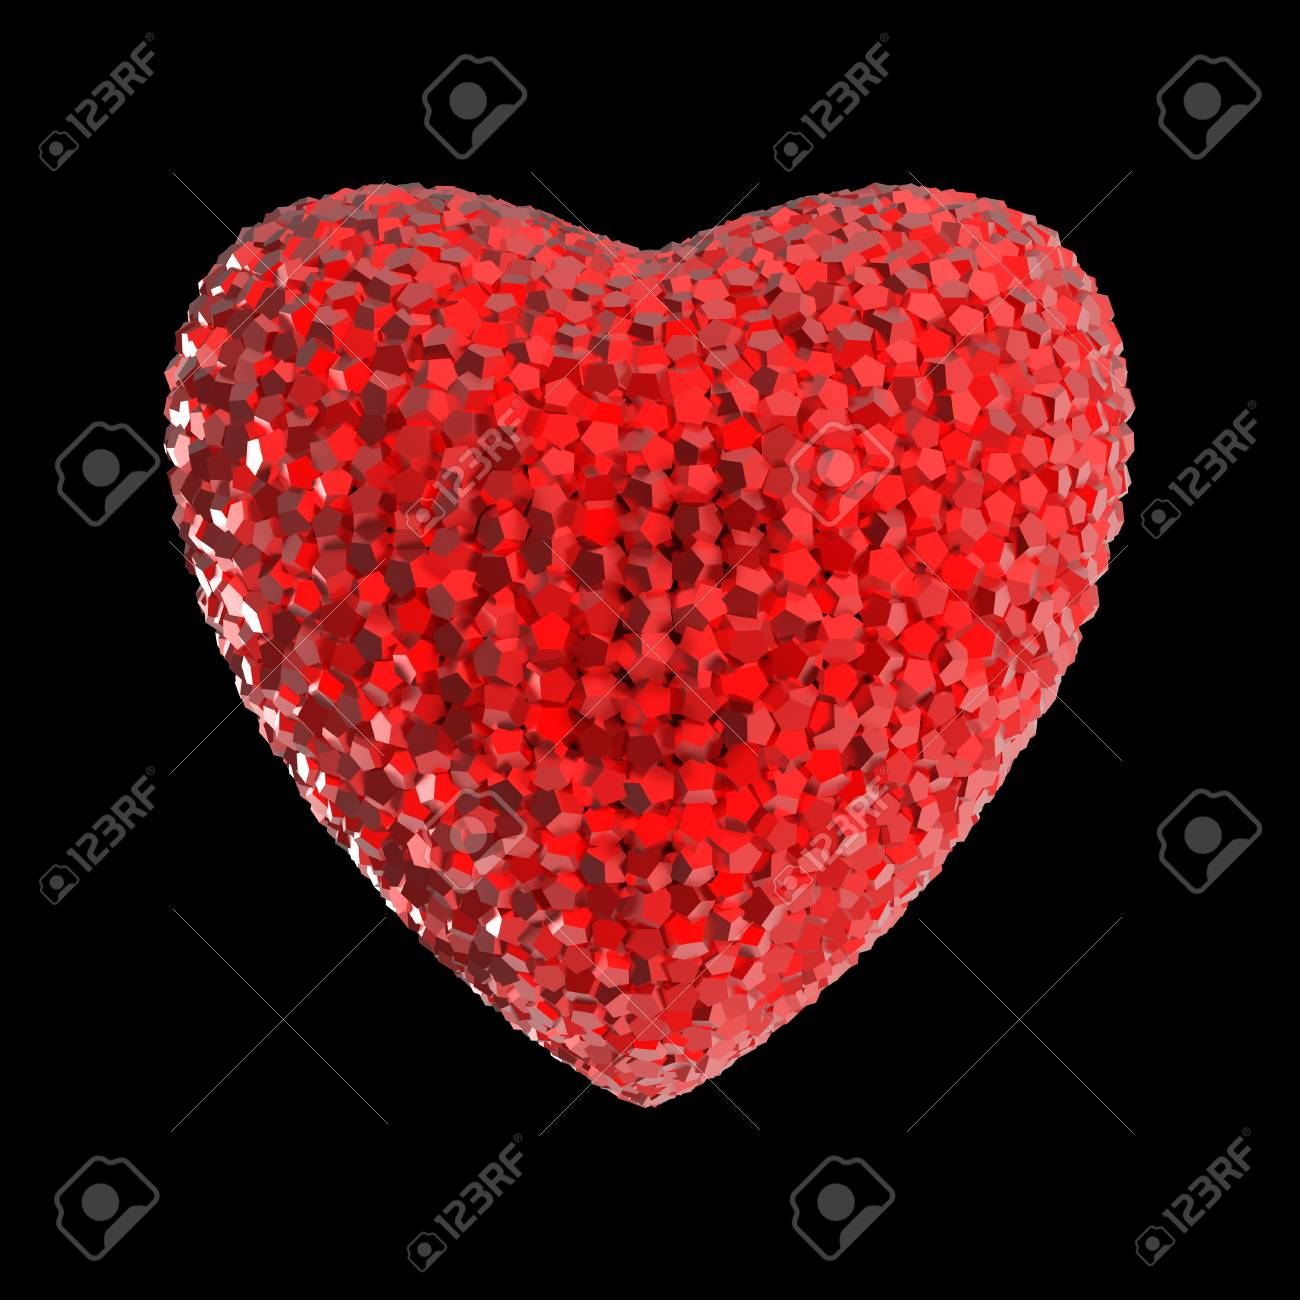 f9f51faad3 Disco style 3d rendered heart made out of shiny colorful crystals isolated  on black Valentines